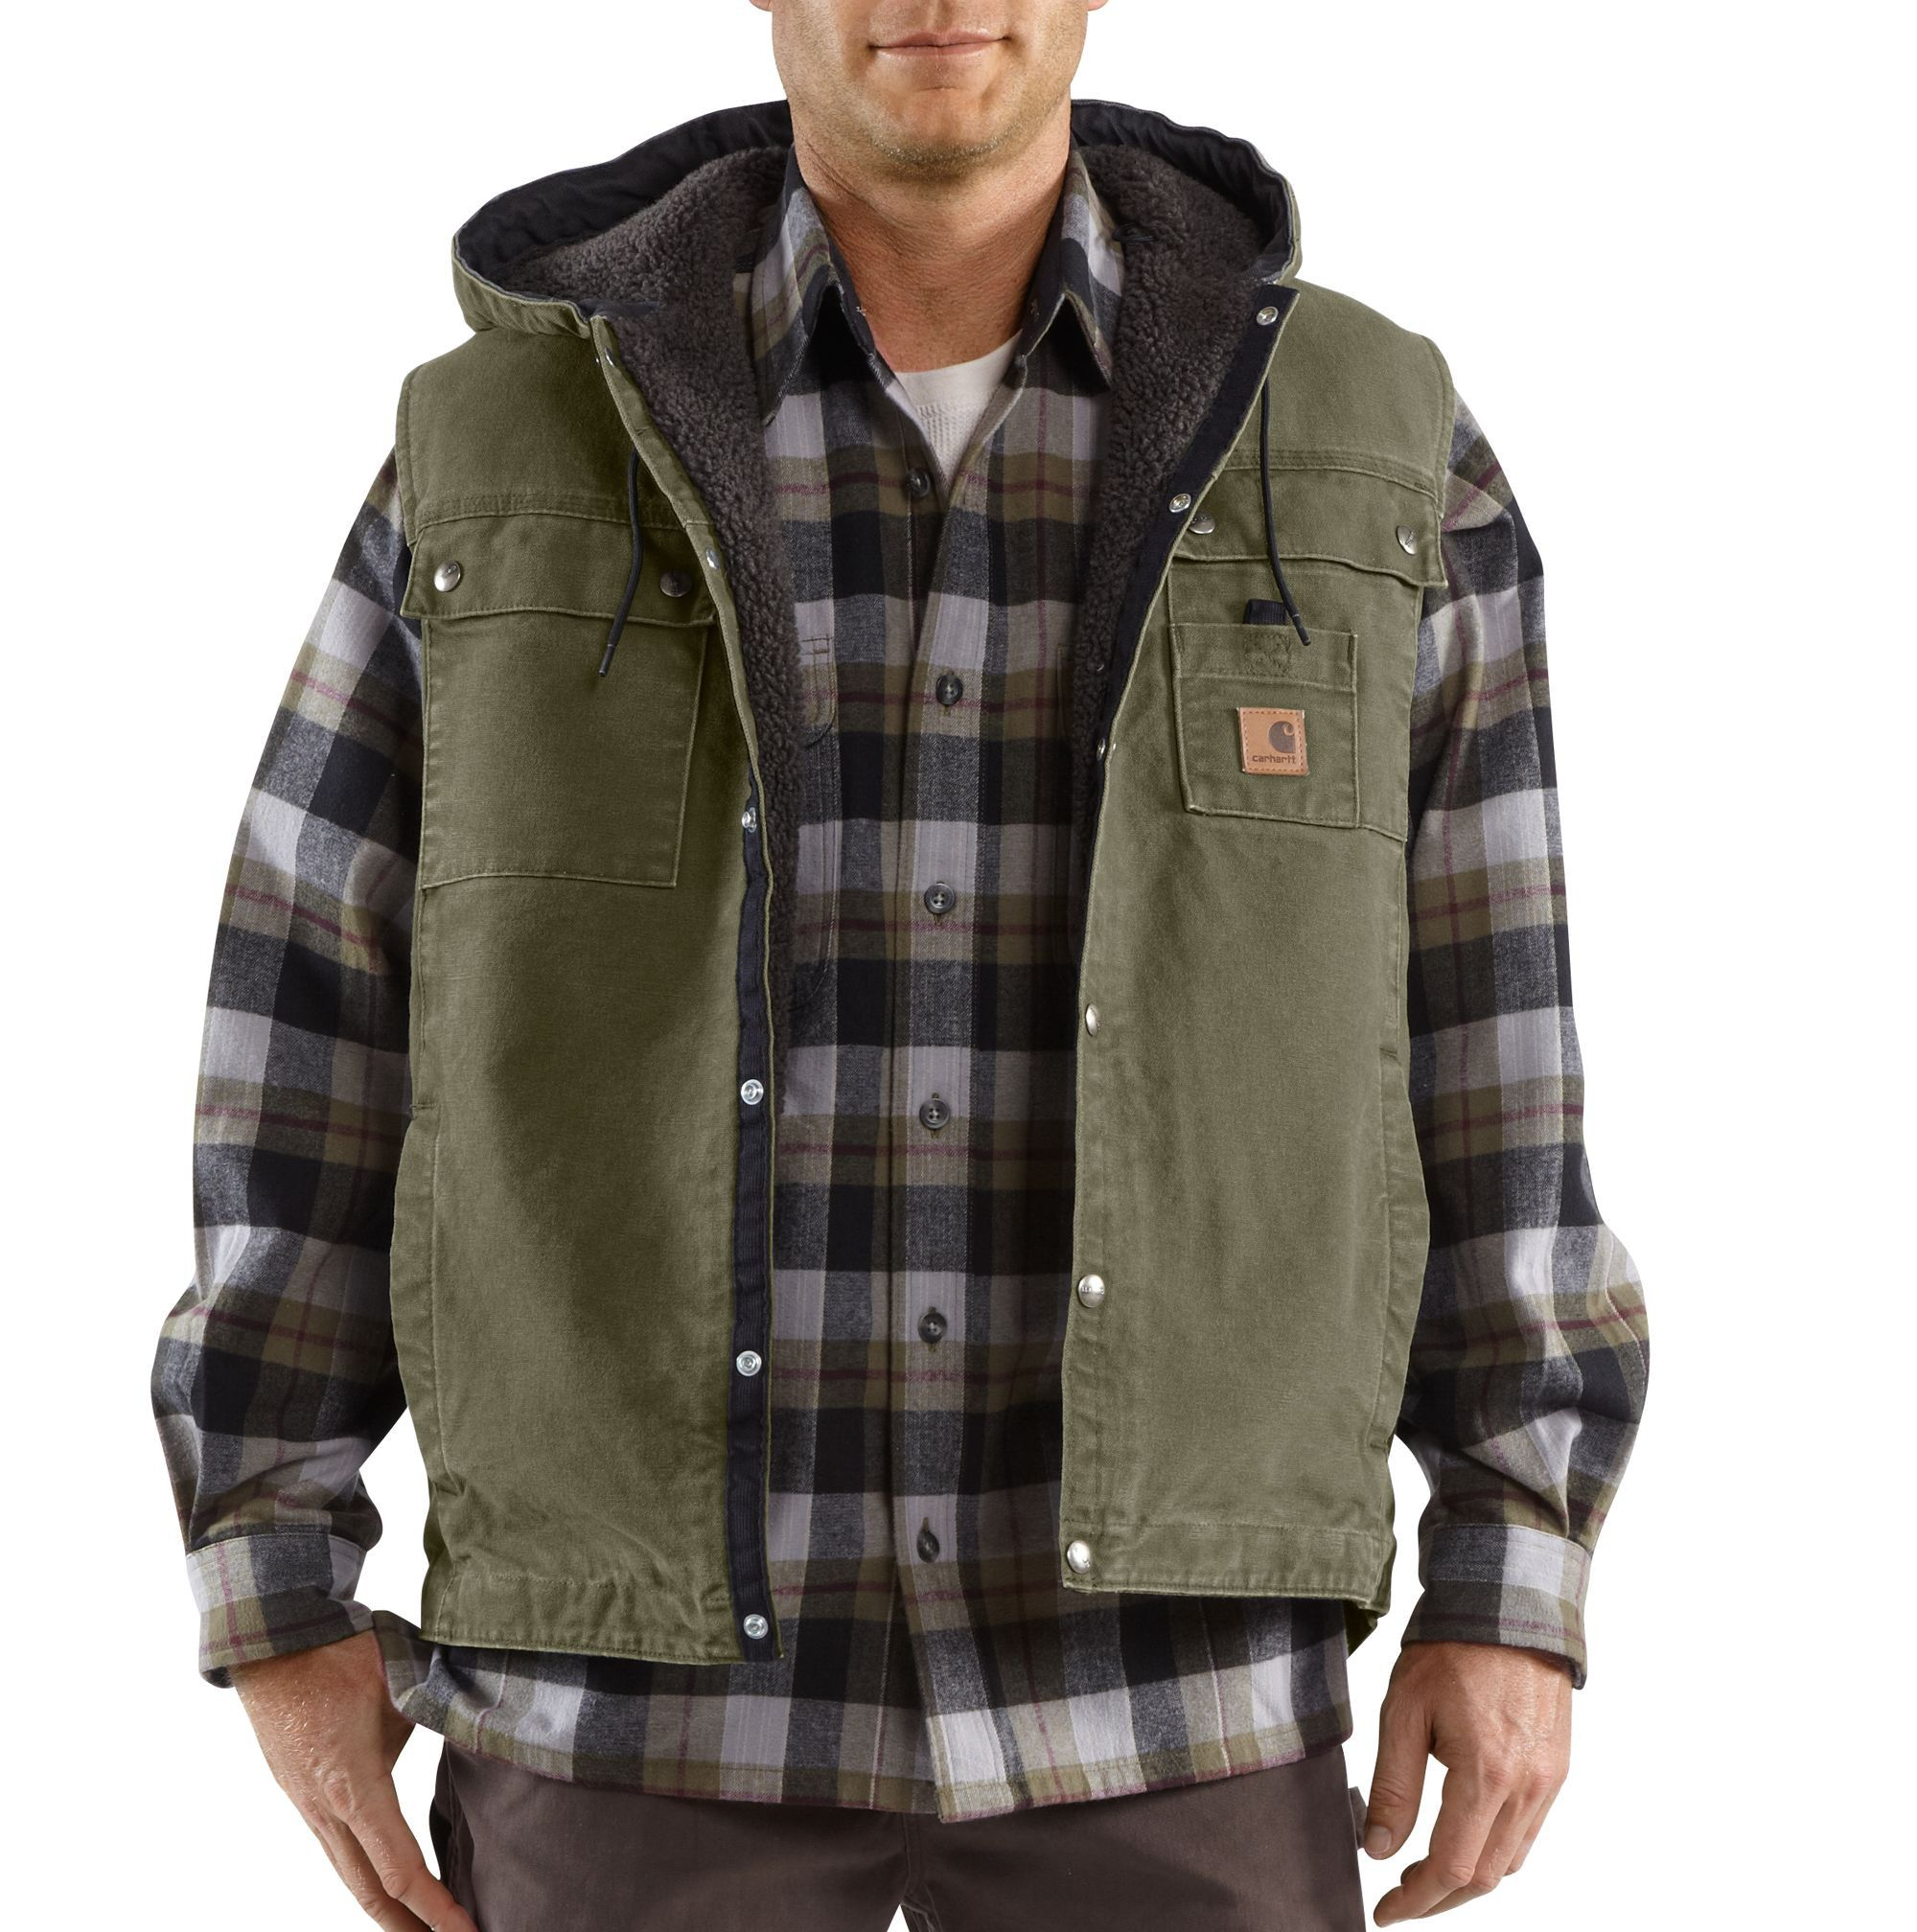 Carhartt Mens Sandstone Hooded Mult Pocket Vest 100114 Army Green